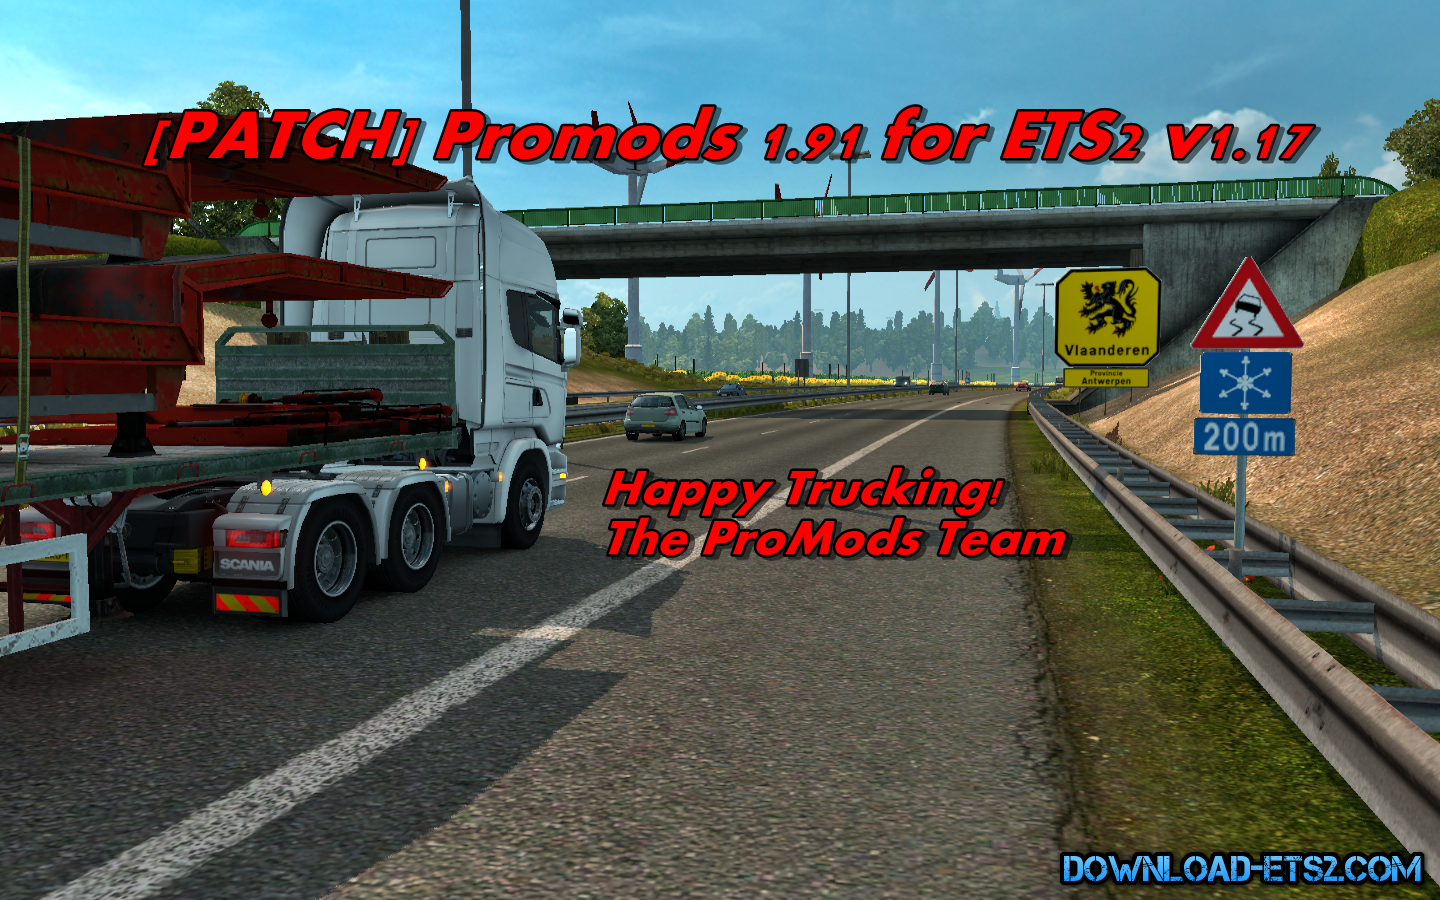 New patch for ProMods v1.91